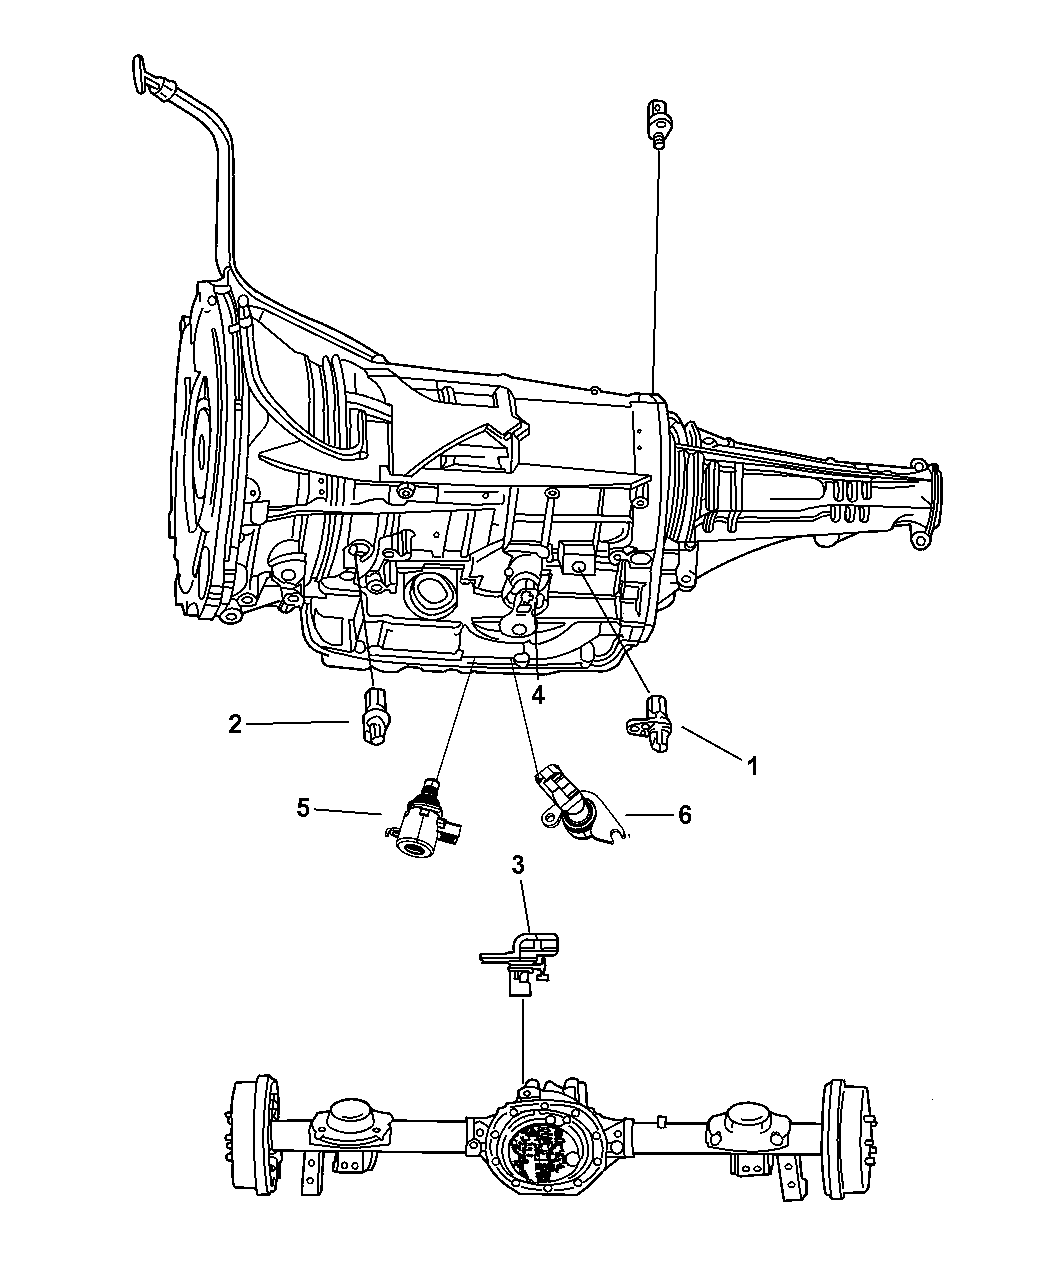 Dodge Nitro 4 0 Engine Diagram Wiring Library 2007 Sensor Drive Train